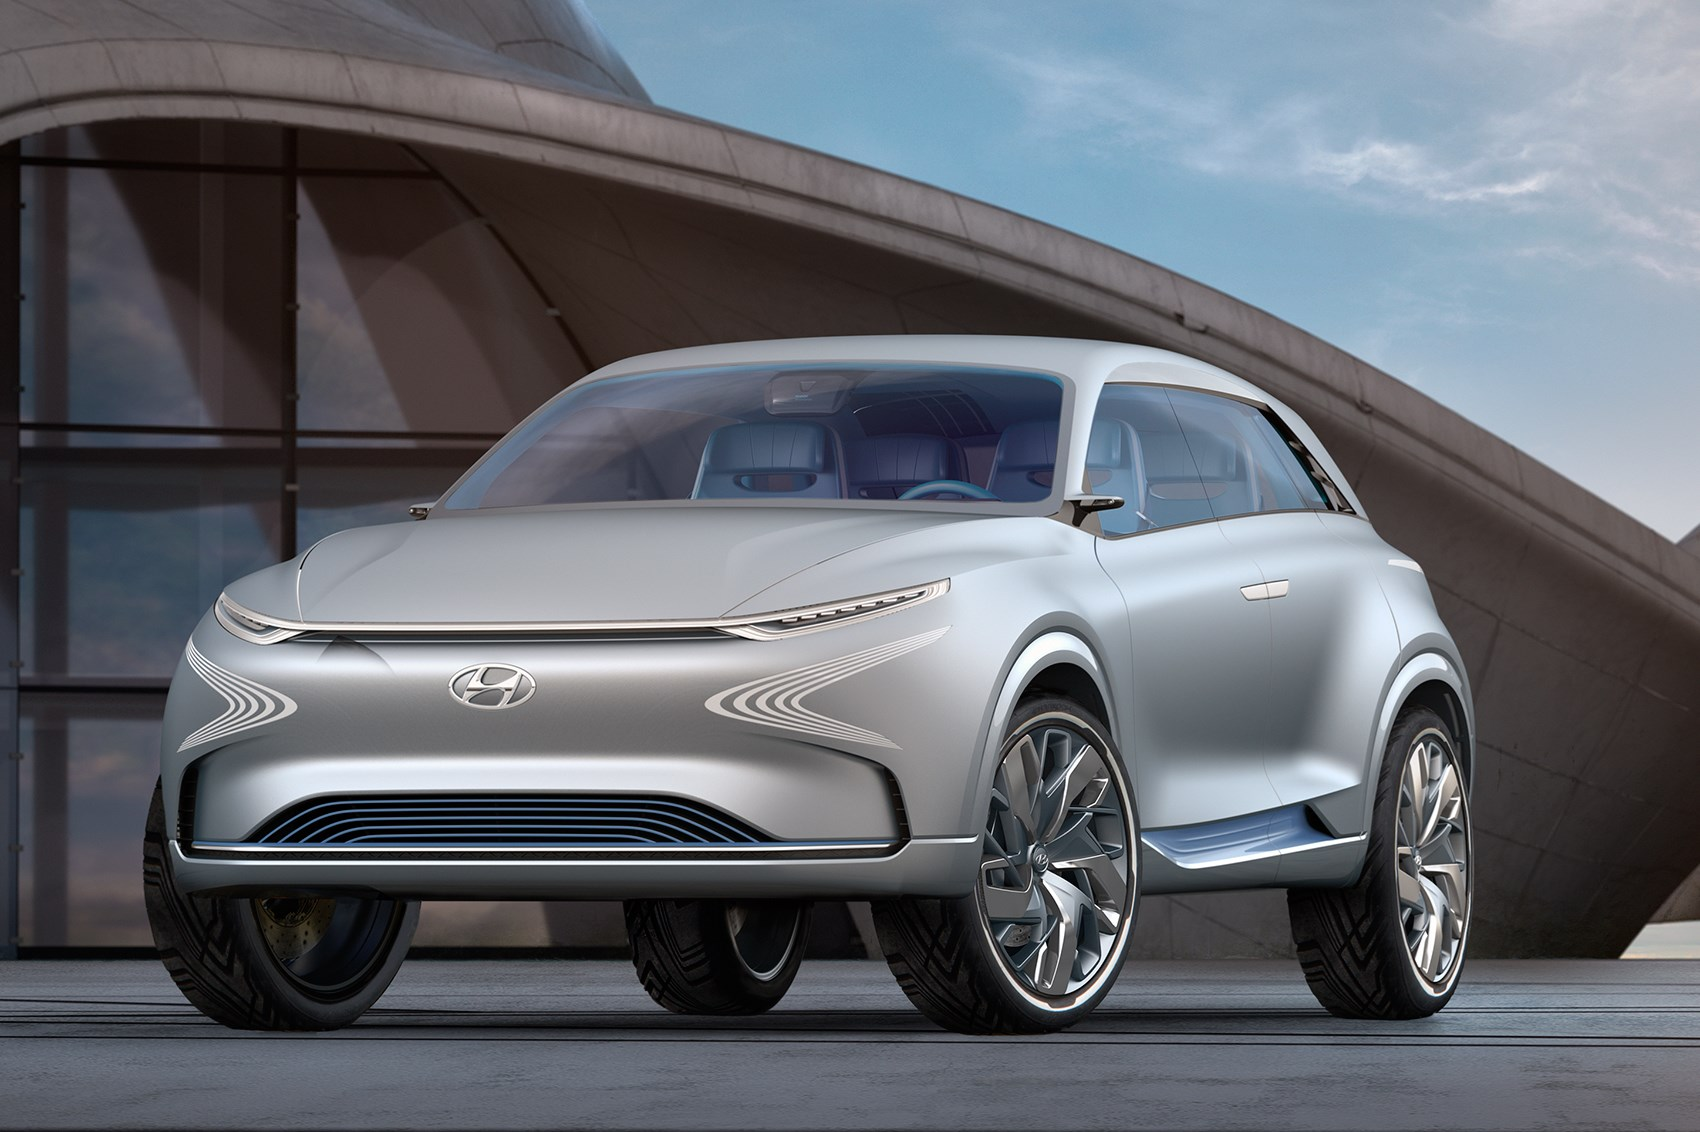 Hyundai unveils hydrogen vehicle concept with boosted driving range